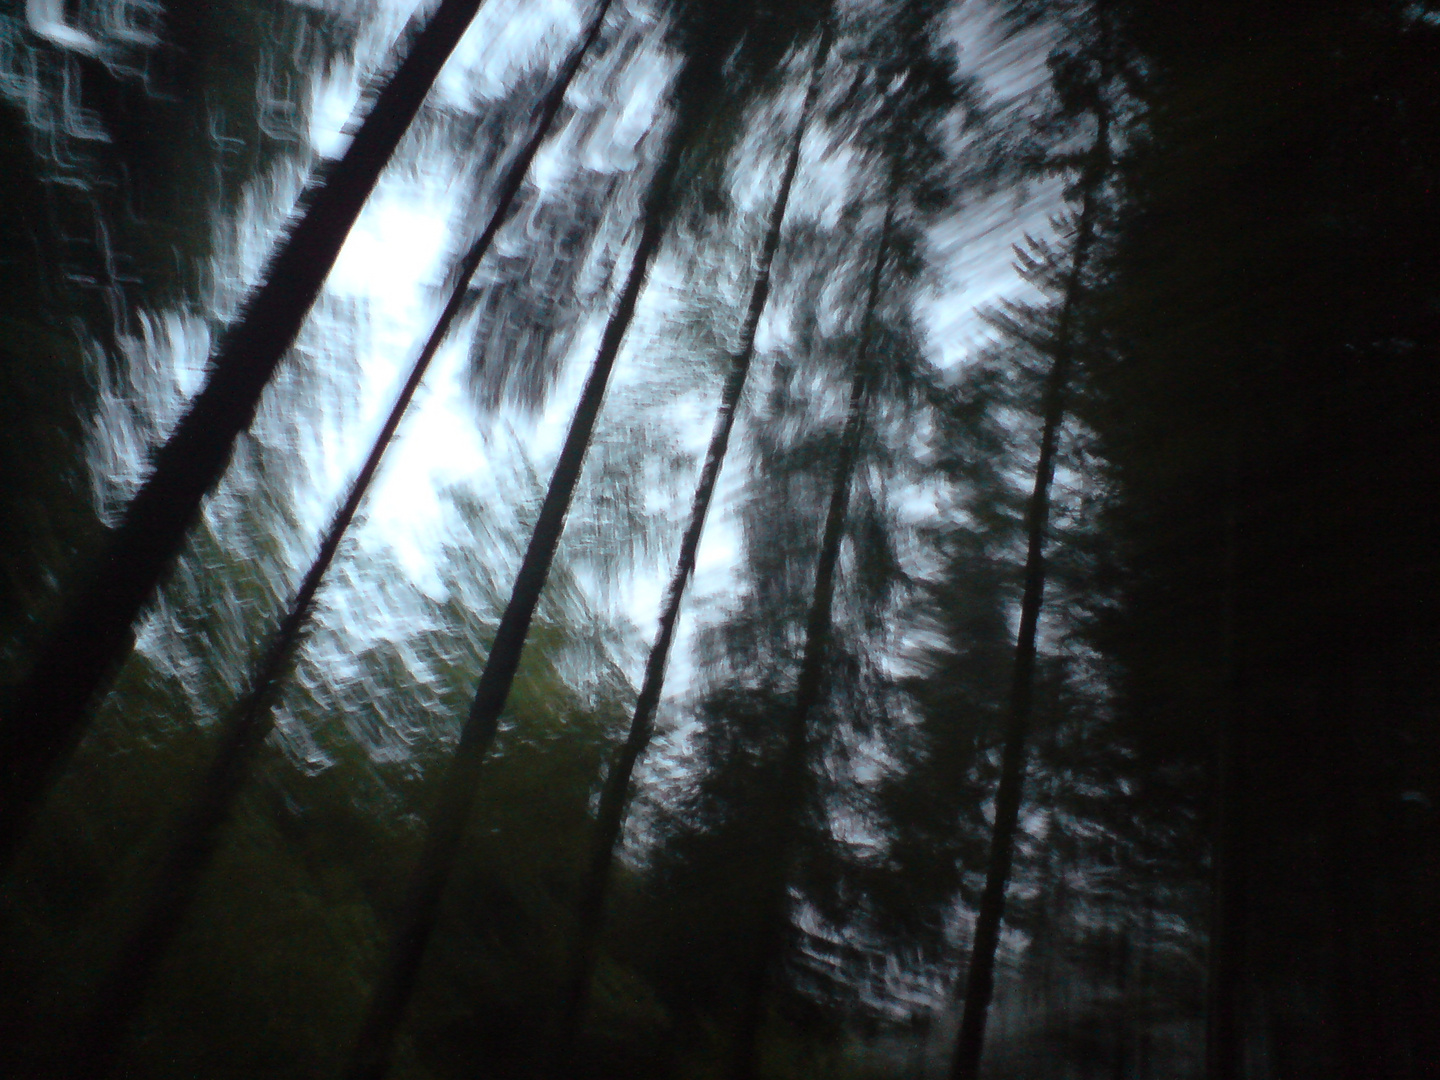 across the forest...